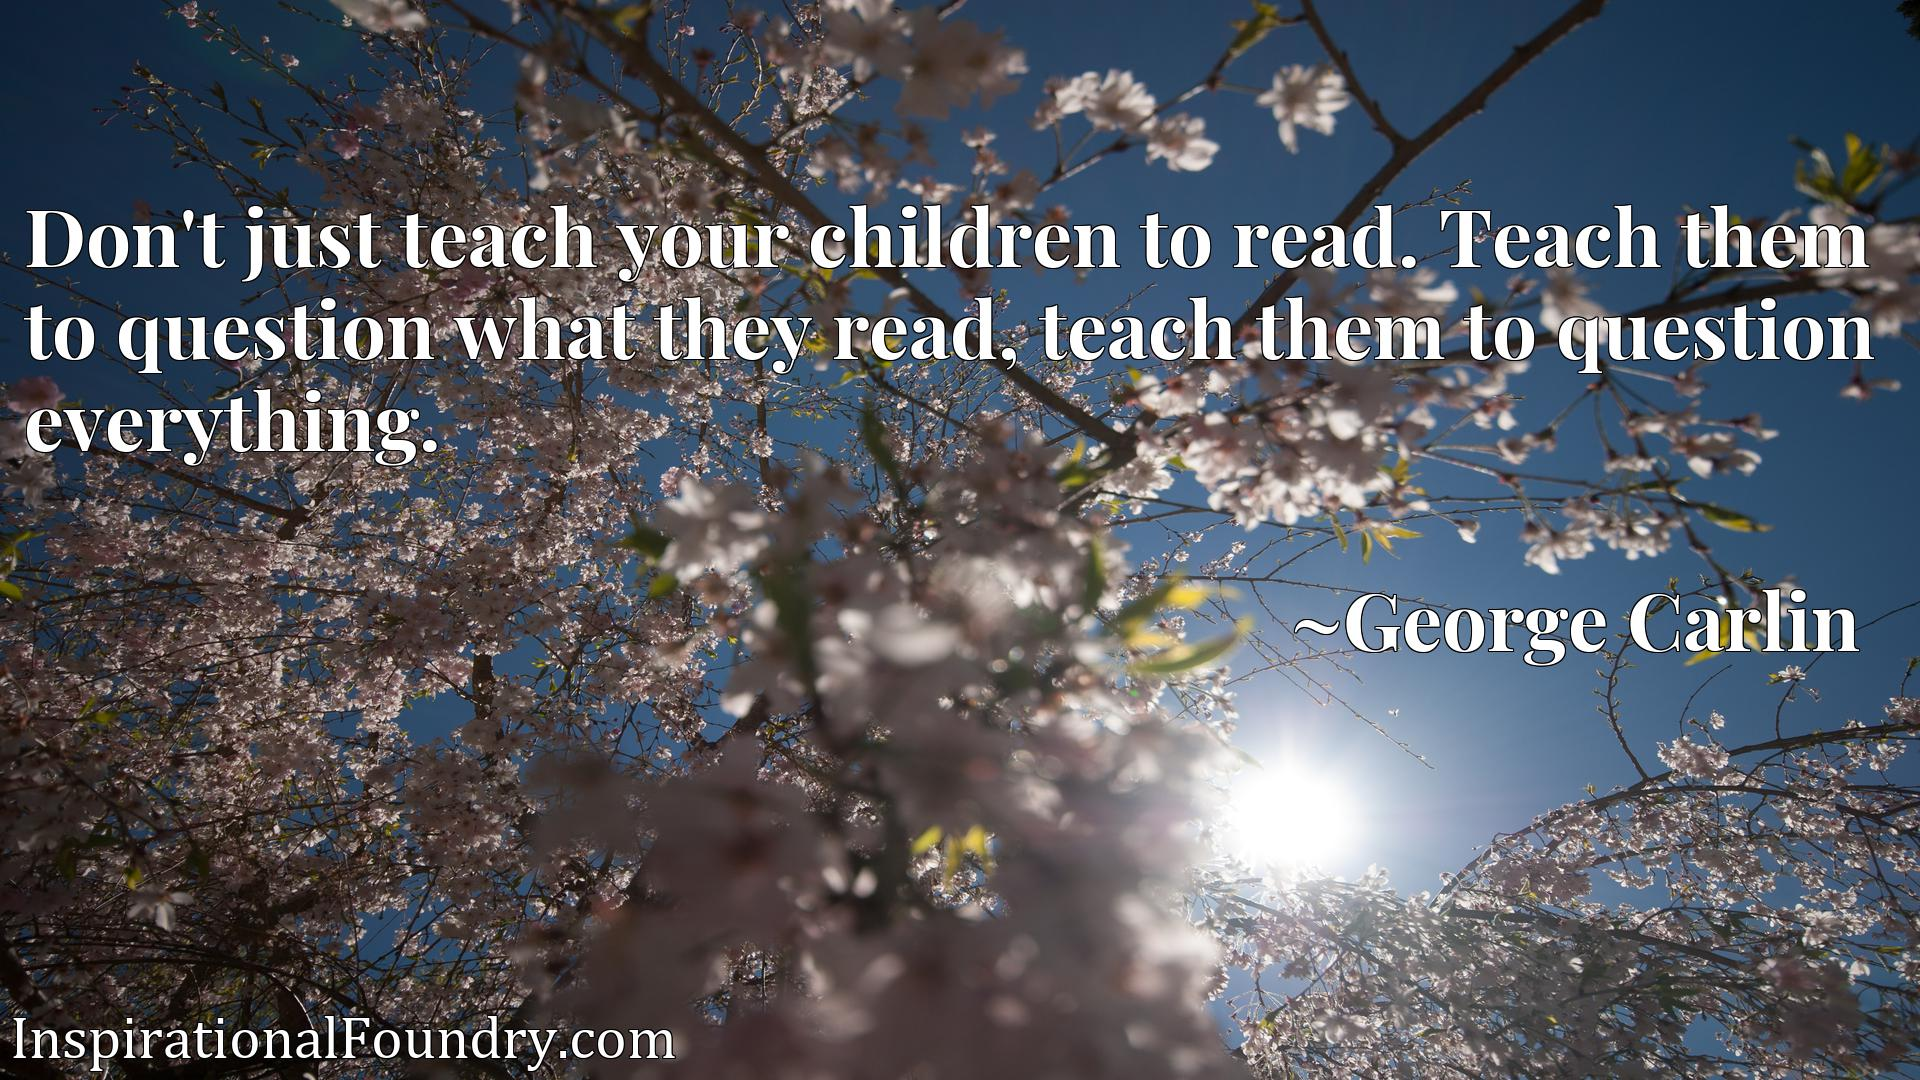 Don't just teach your children to read. Teach them to question what they read, teach them to question everything.